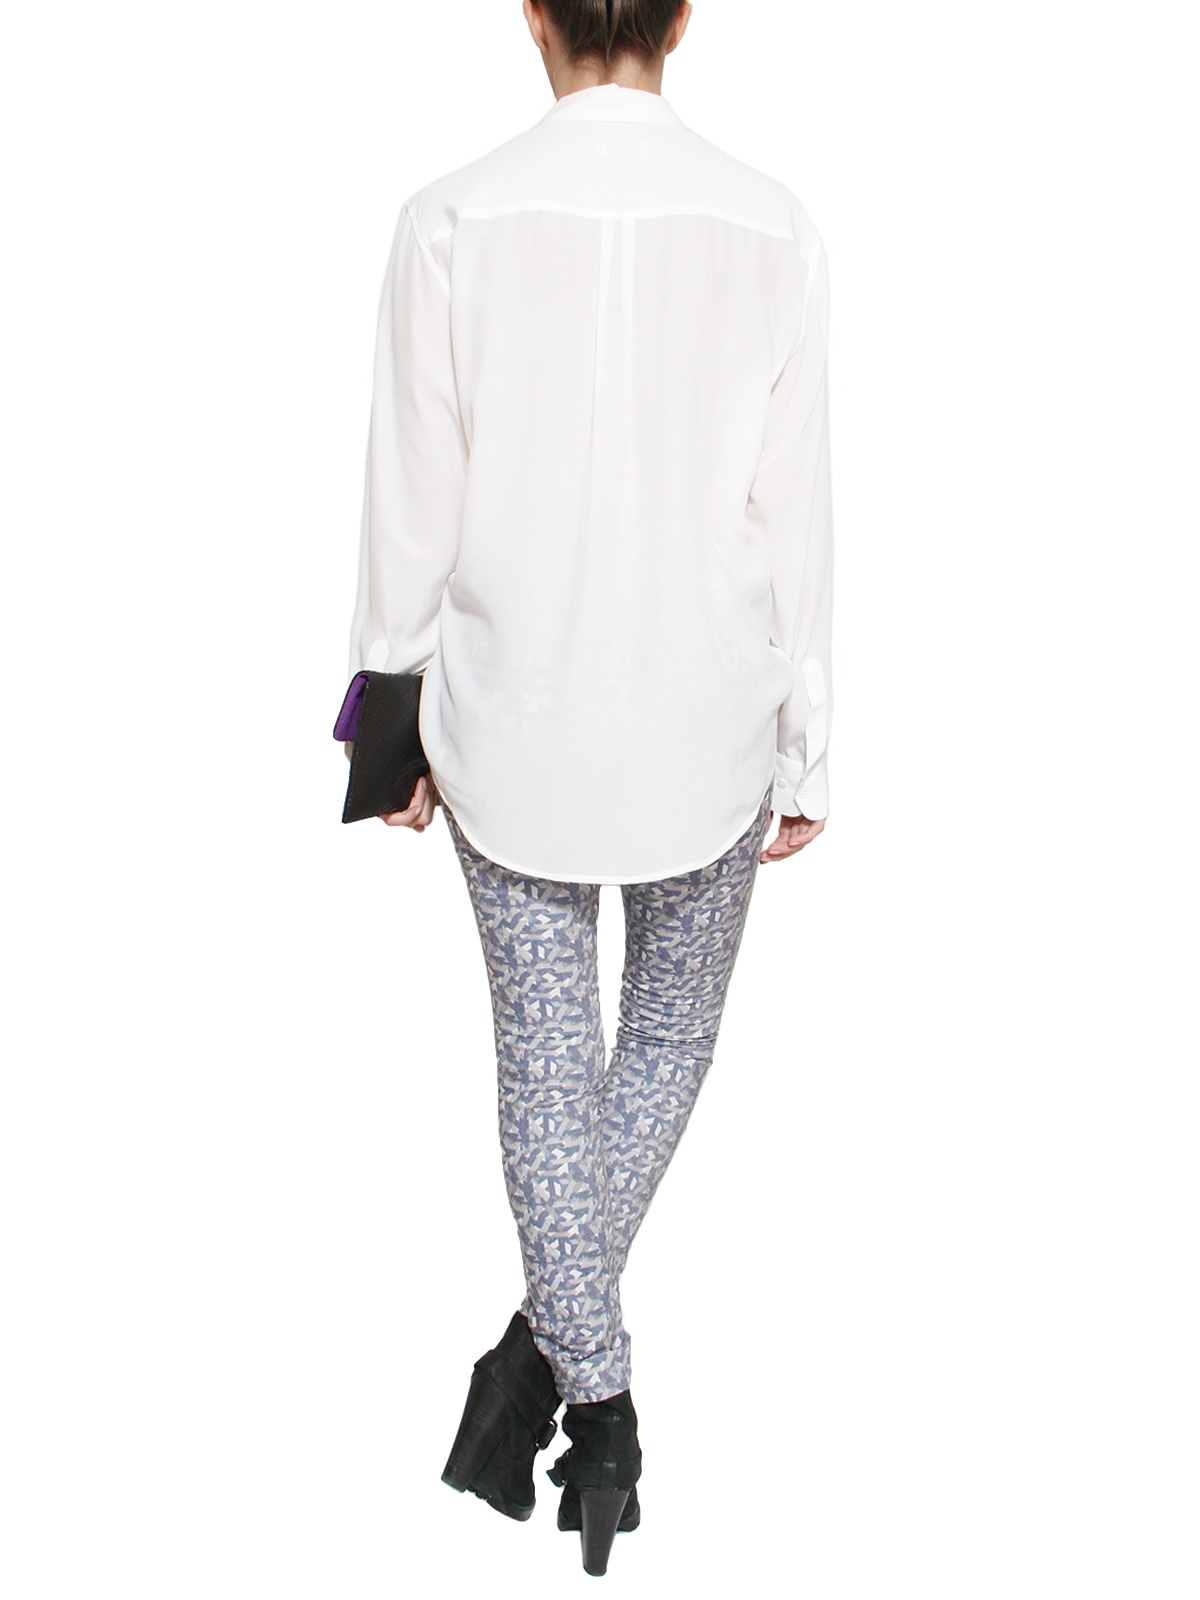 SIGNATURE WHITE SHIRT | GIRISSIMA.COM - Collectible fashion to love and to last